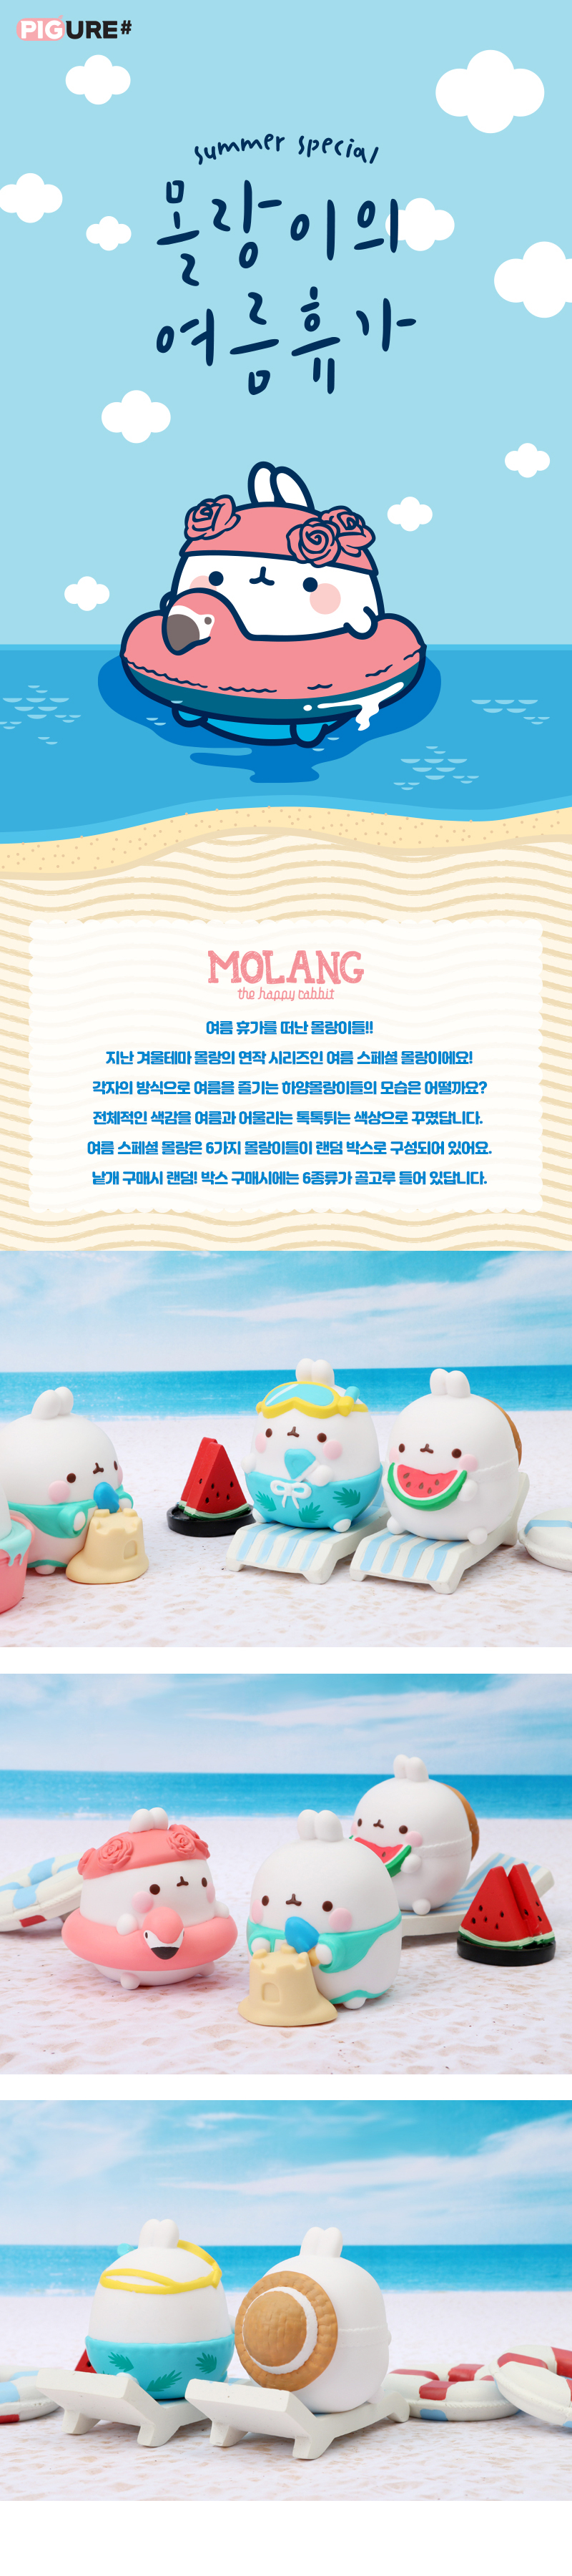 molang_figure_summer_special_01.jpg